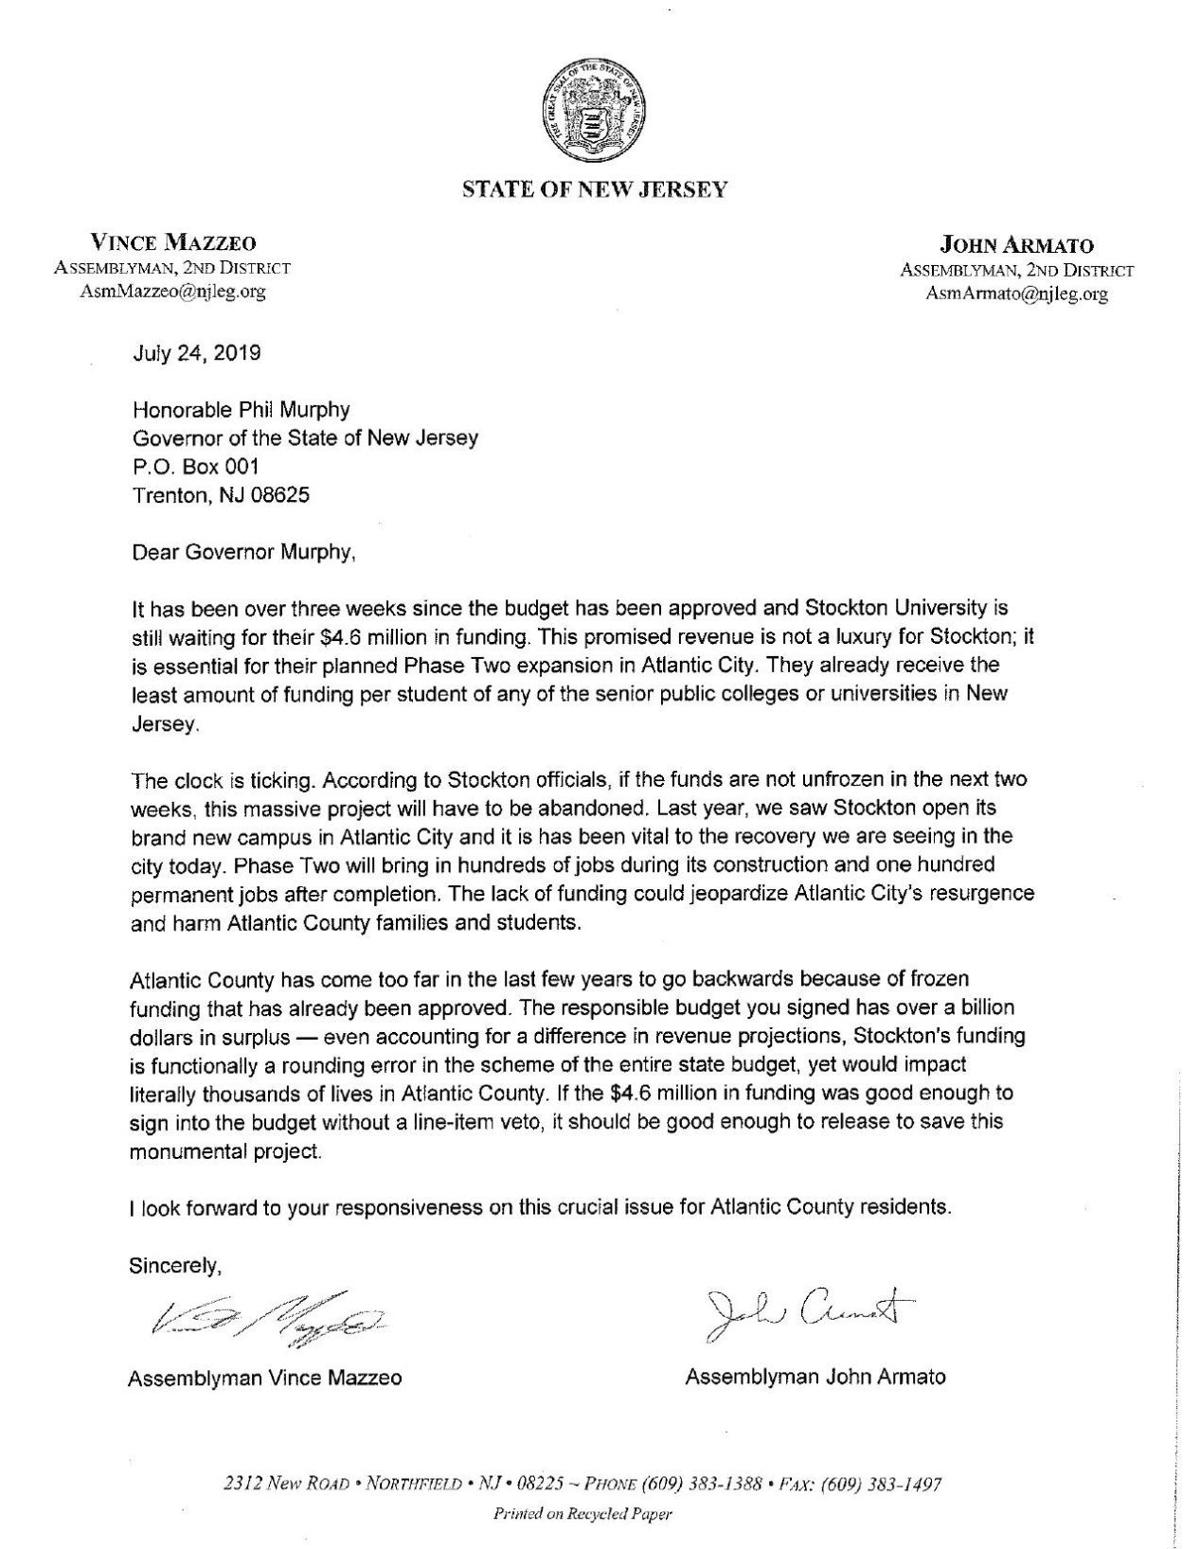 Mazzeo Armato letter to governor